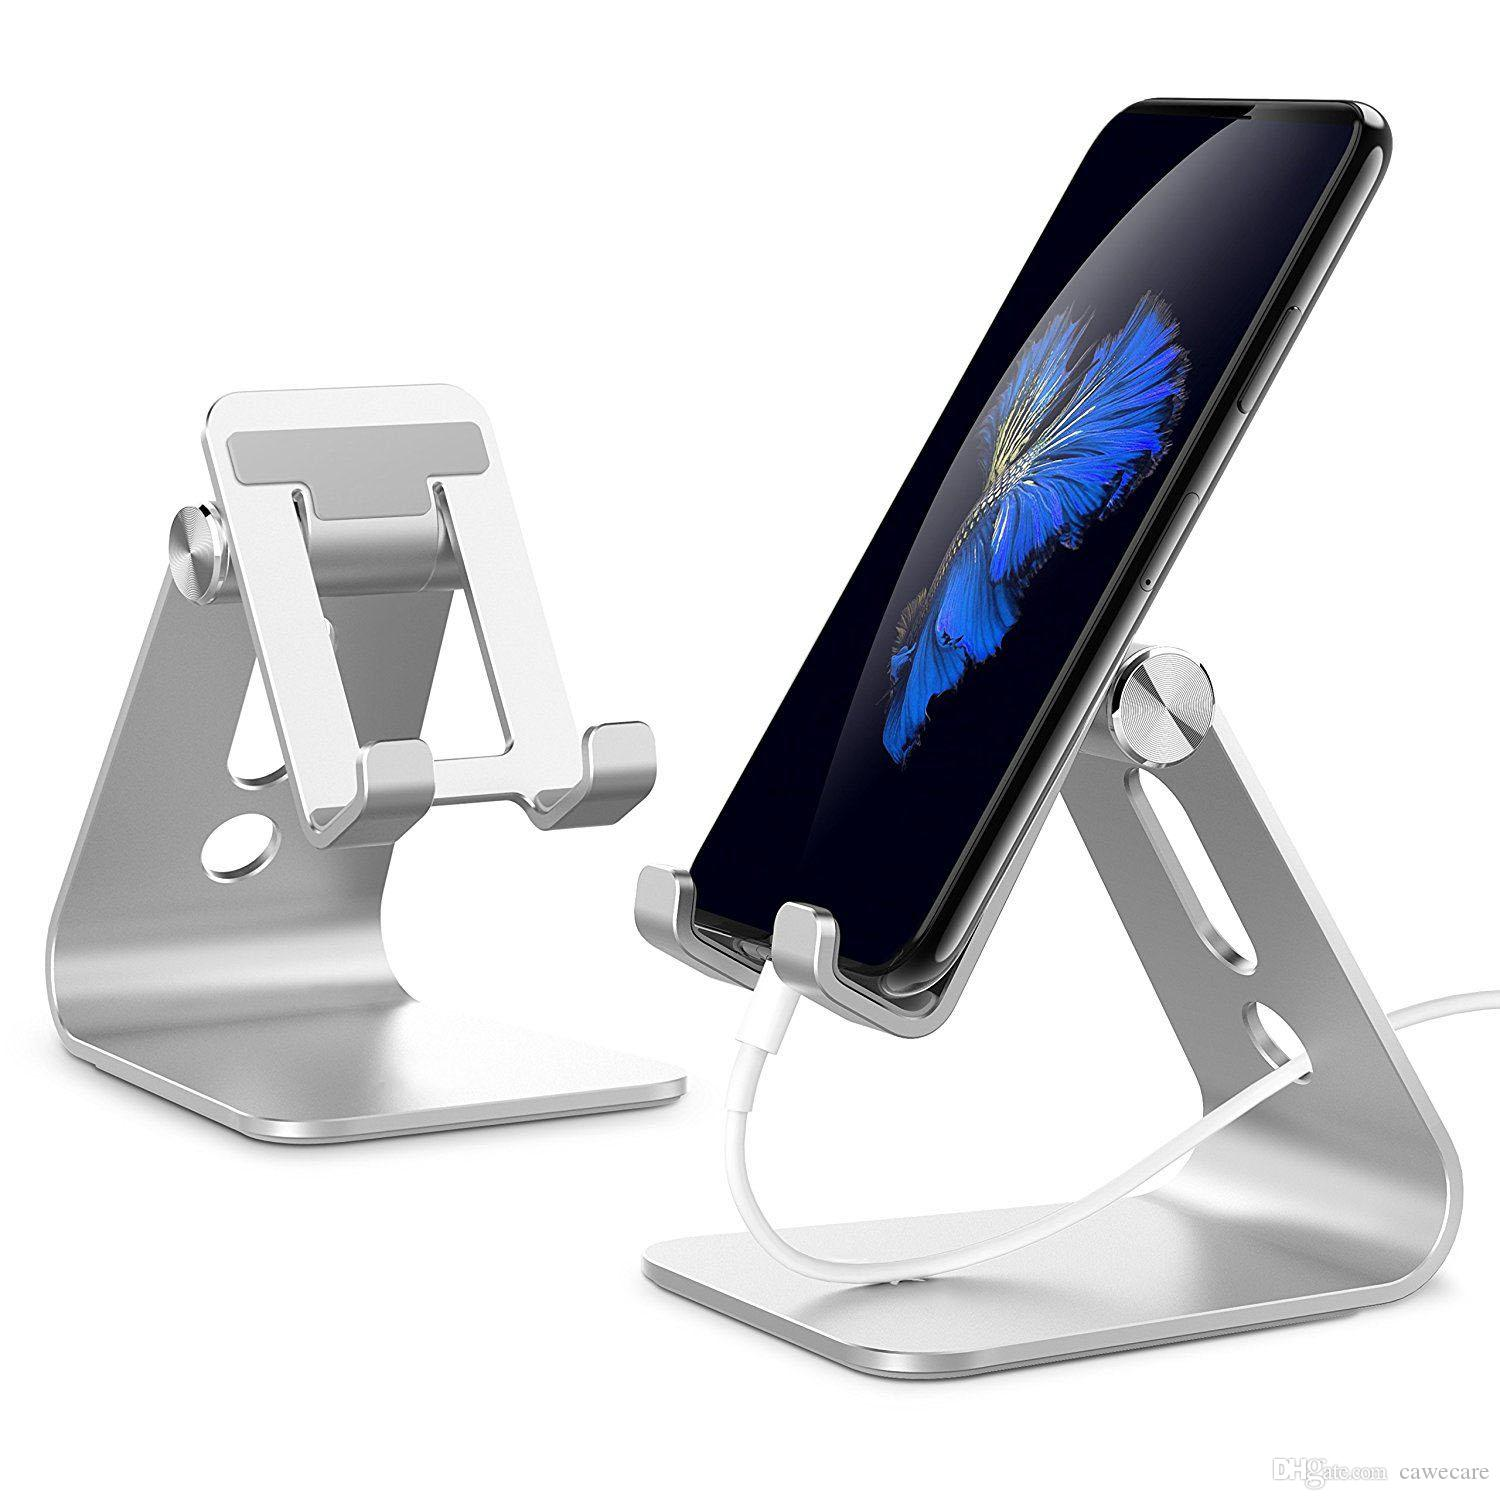 Cac030 Est 10x Desktop Phone And Tablet Stand Cradle Dock For All Cell Iphone Android Tablets Ipad Holder Desk 360